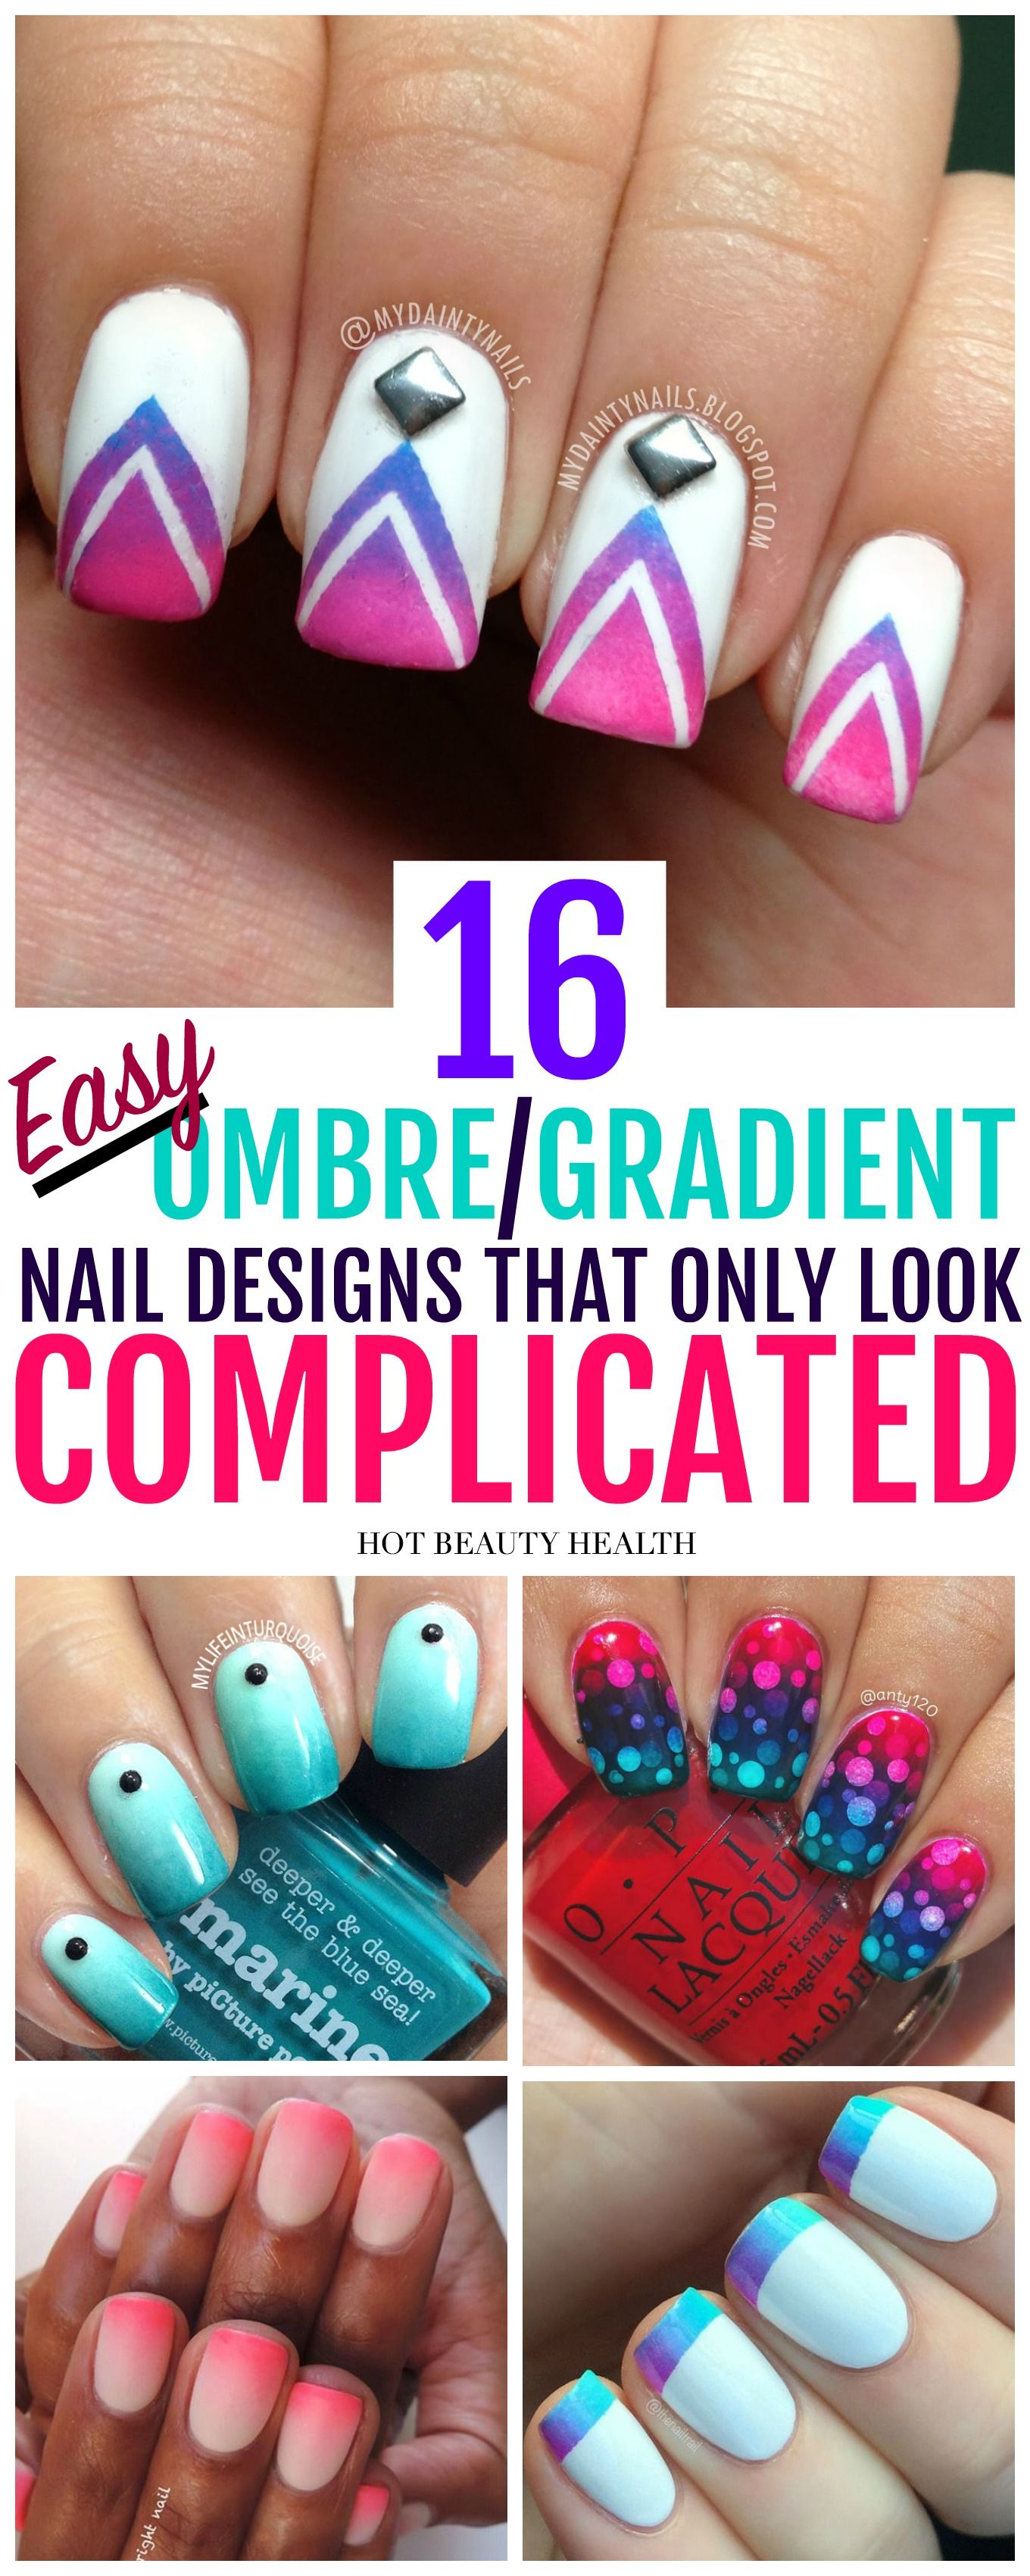 16 Ombregradient Nail Art Designs Thatll Make A Statement Cool